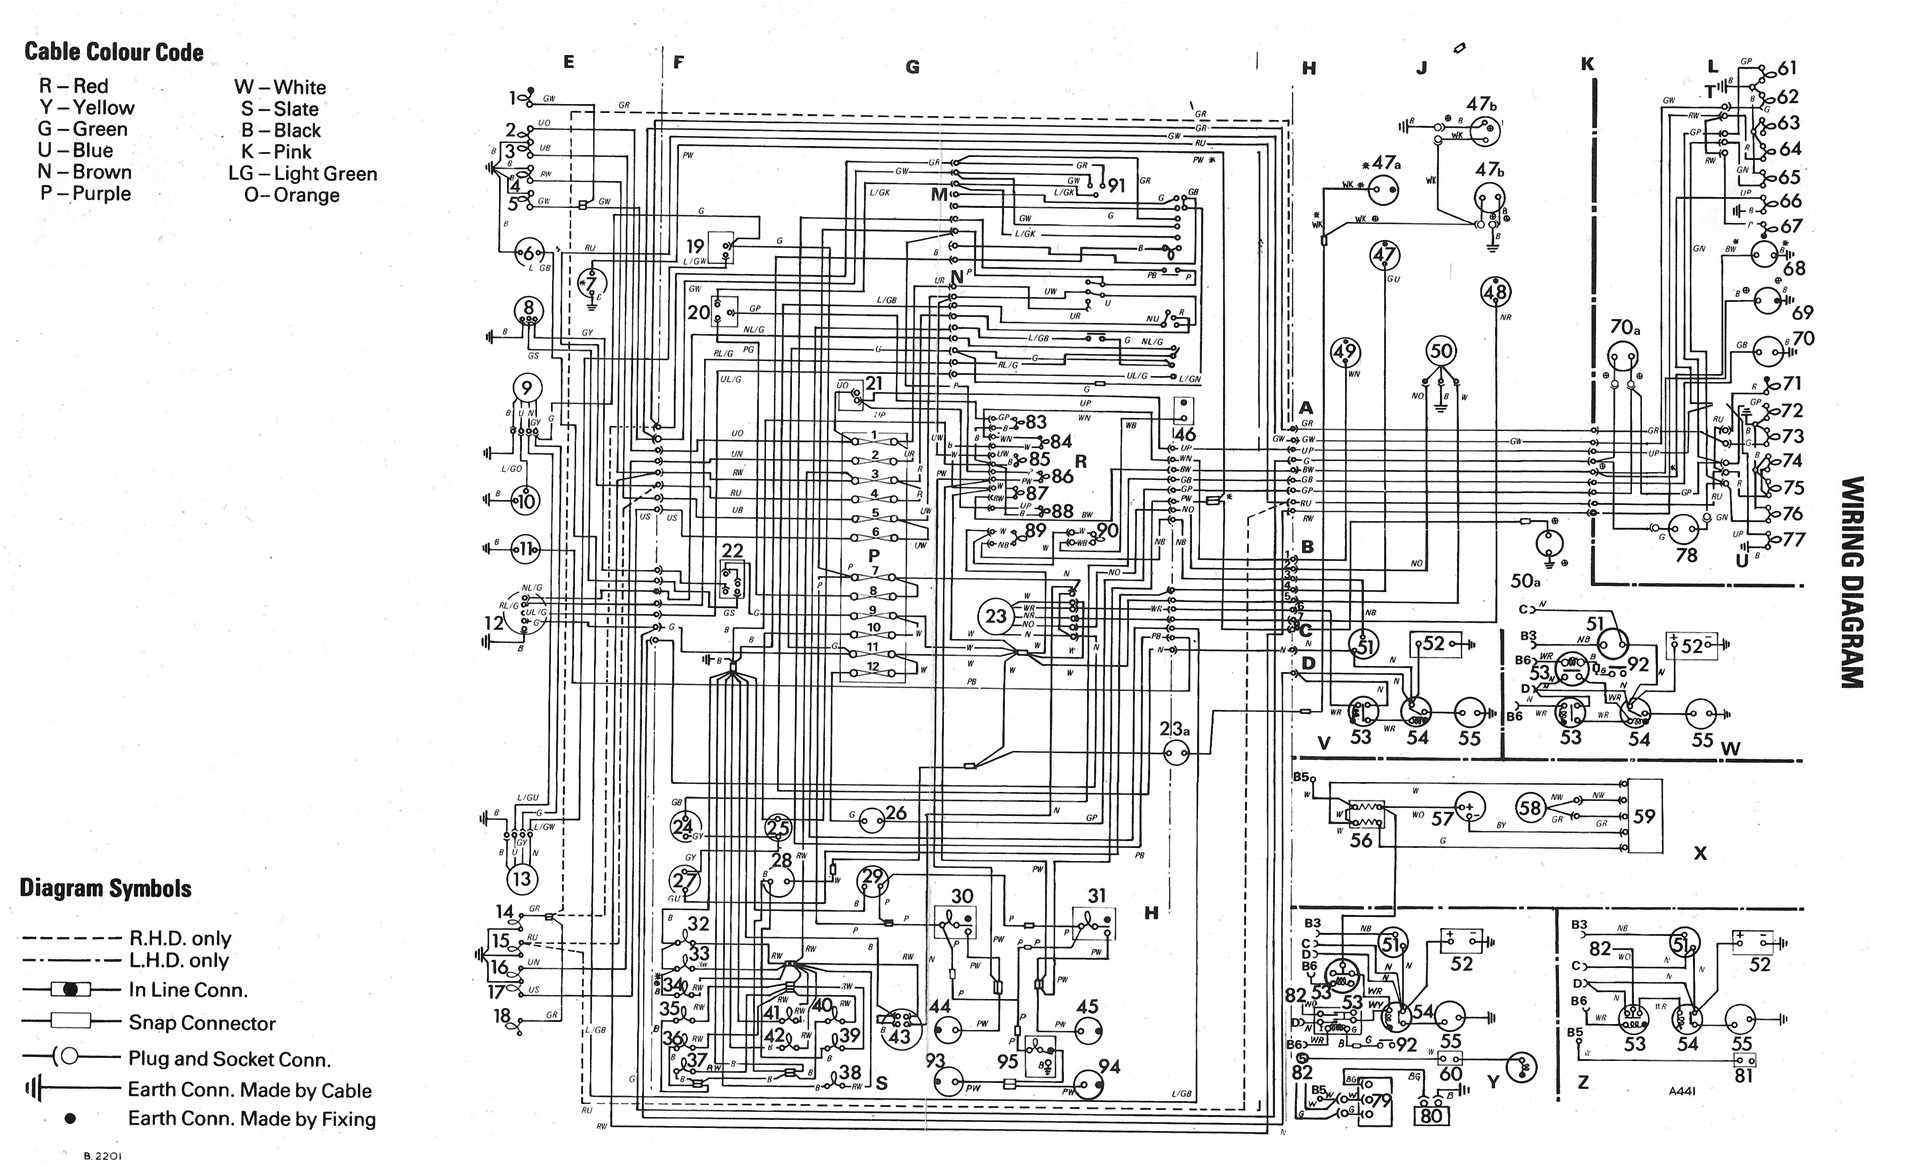 87 Vw Golf 1 8 Engine Diagrams Wiring Diagram Fuse On 8t Libraryvw T